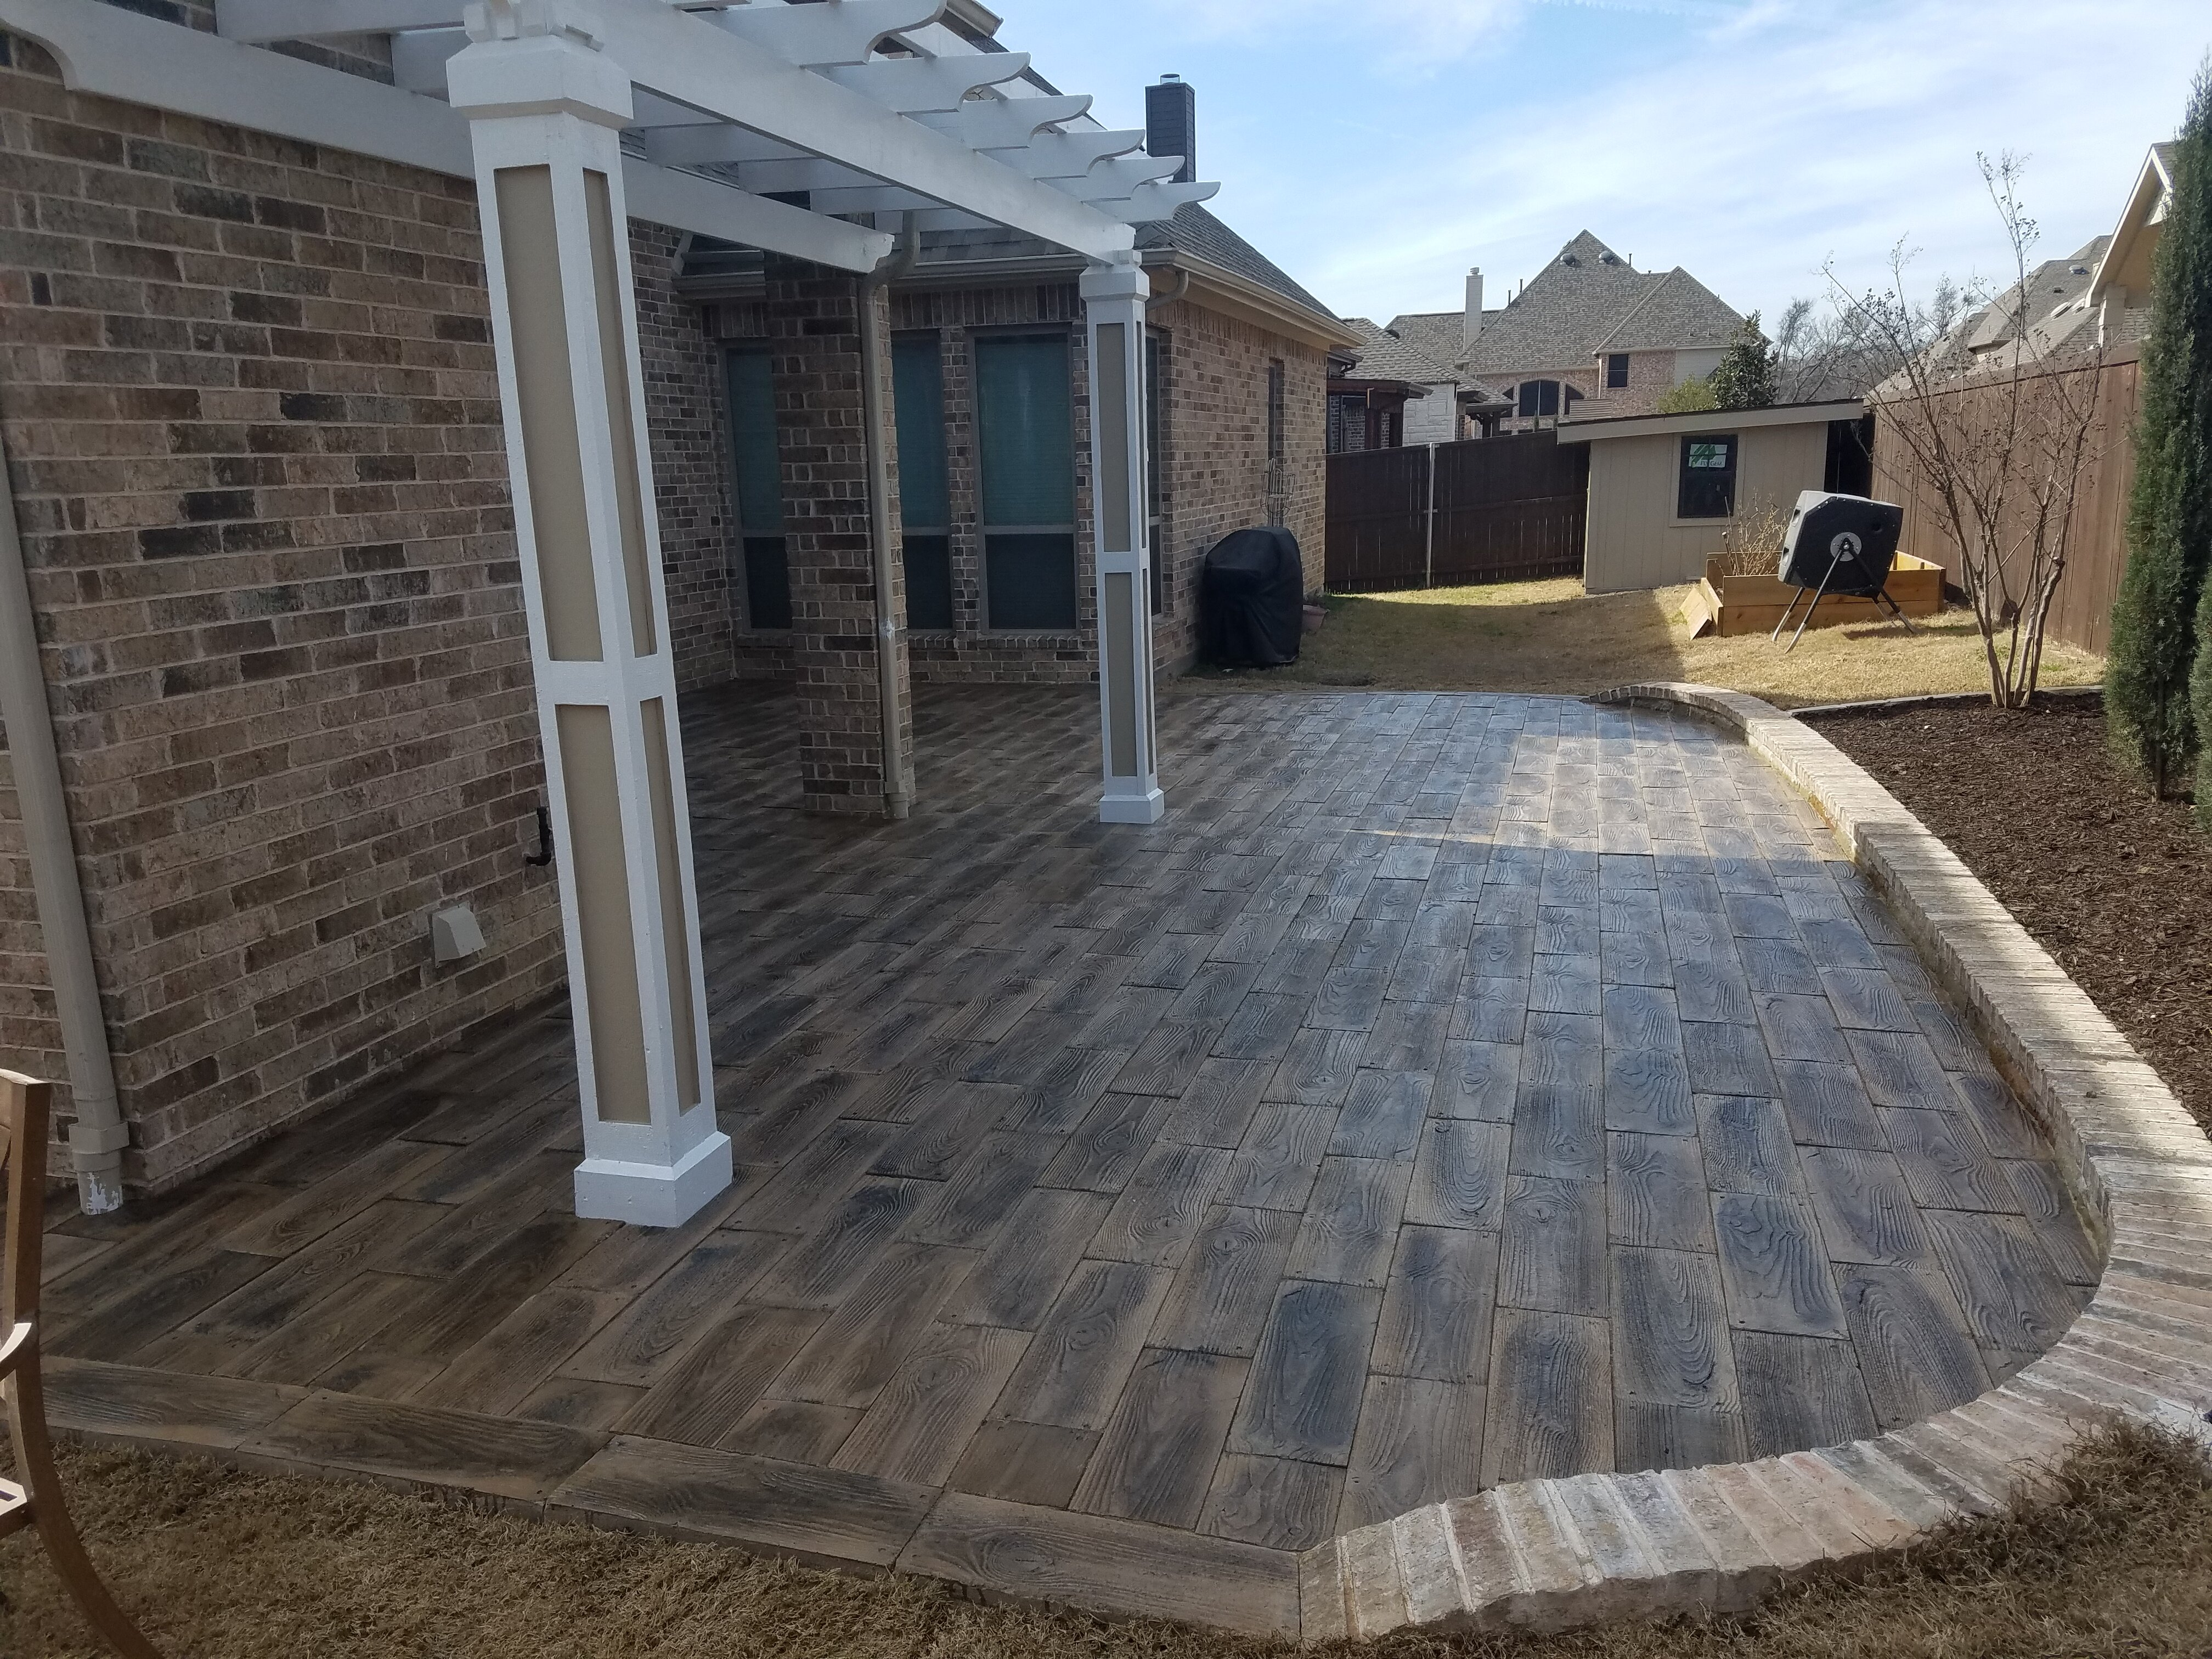 Barnwood Plank Patio-on-a-Pallet Paver Set